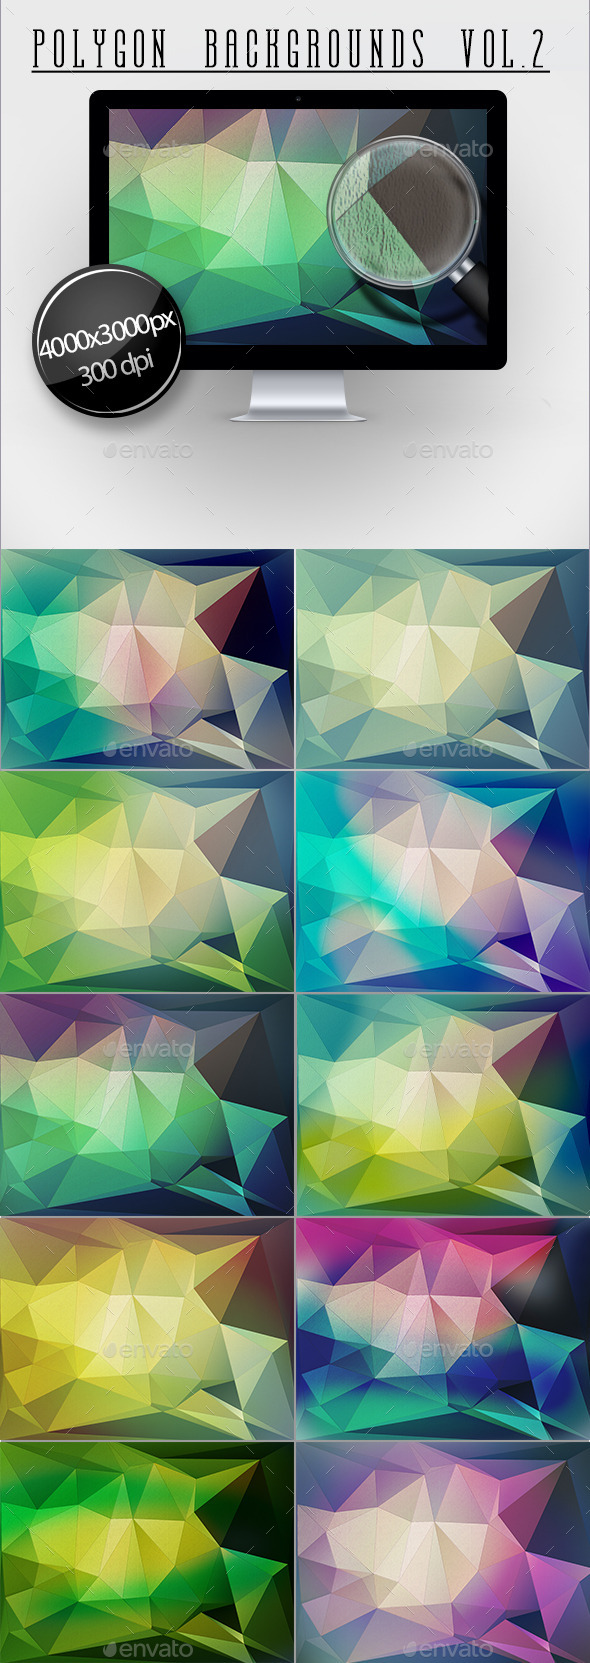 Polygon Backgrounds Vol.2 - Backgrounds Graphics